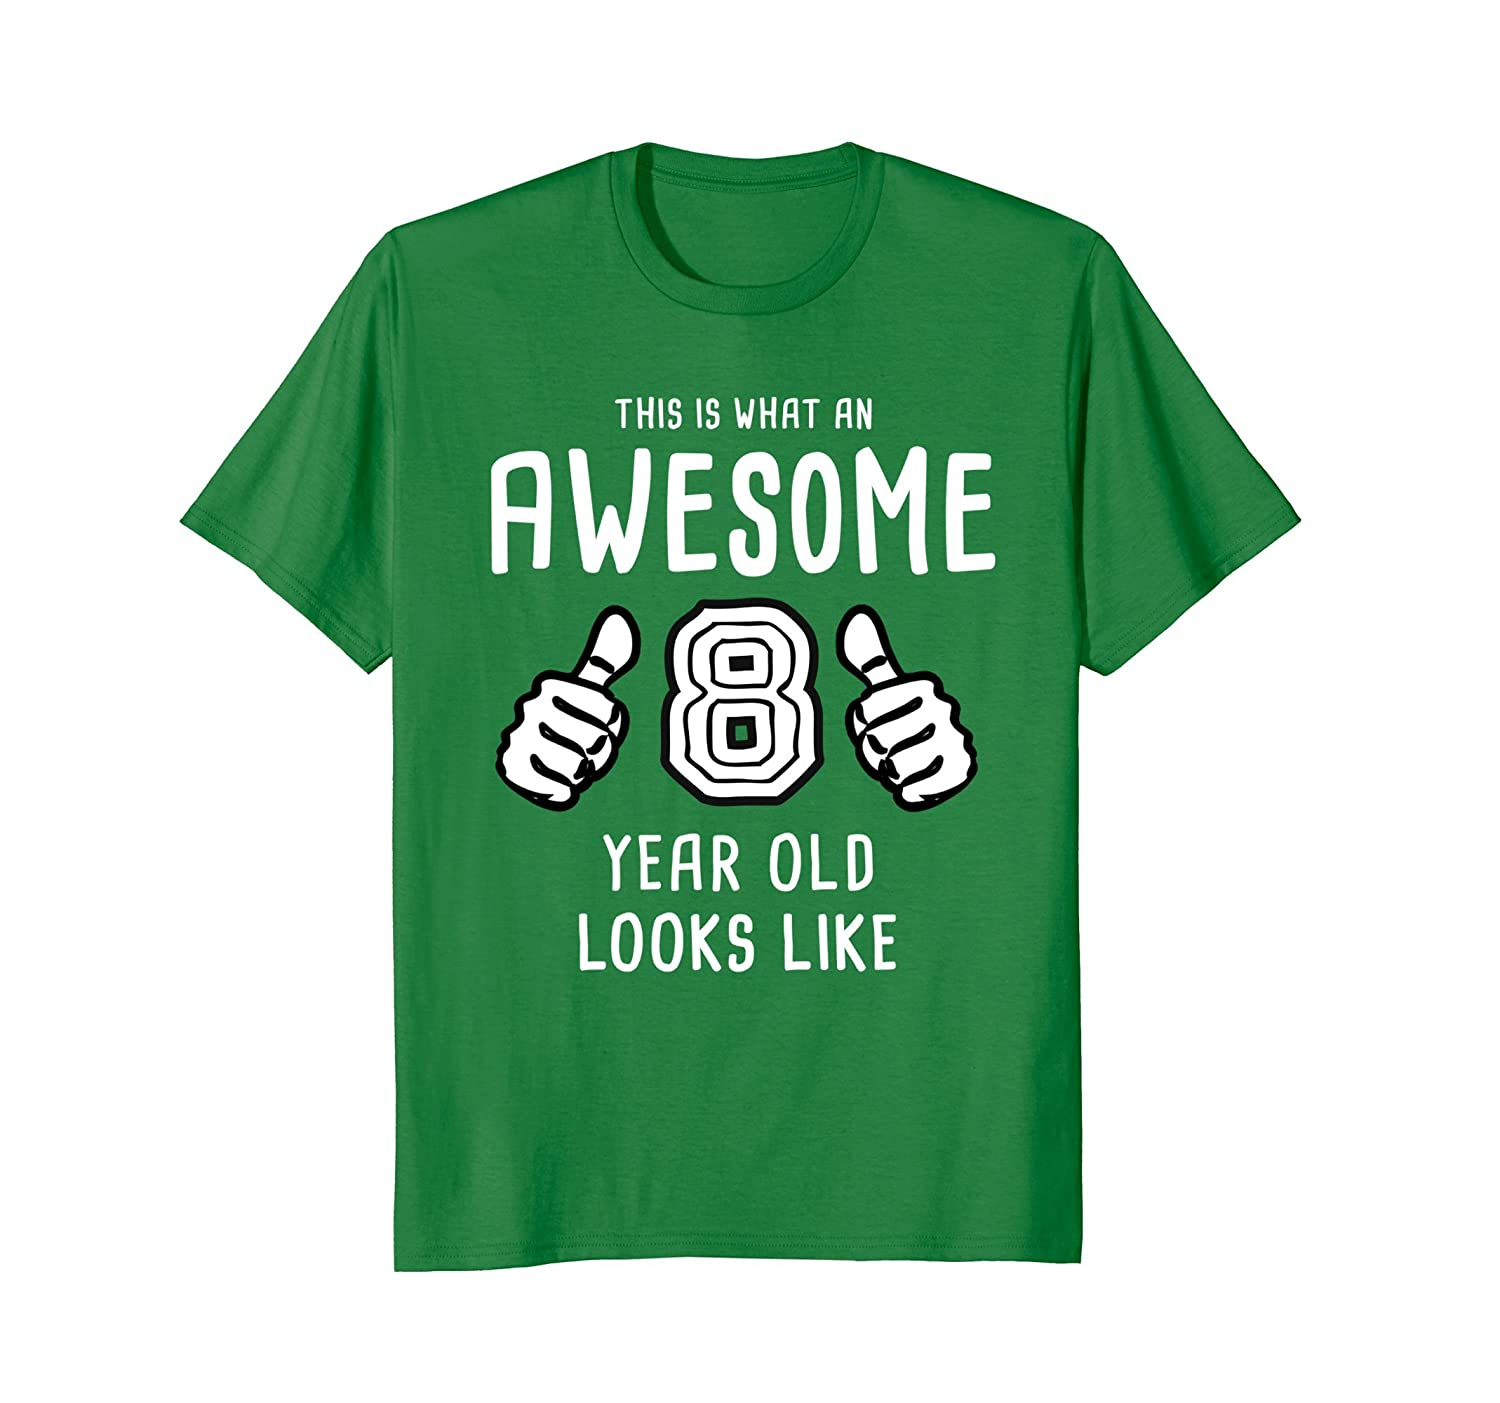 Pinkbest1 Awesome 8 Year Old Shirt